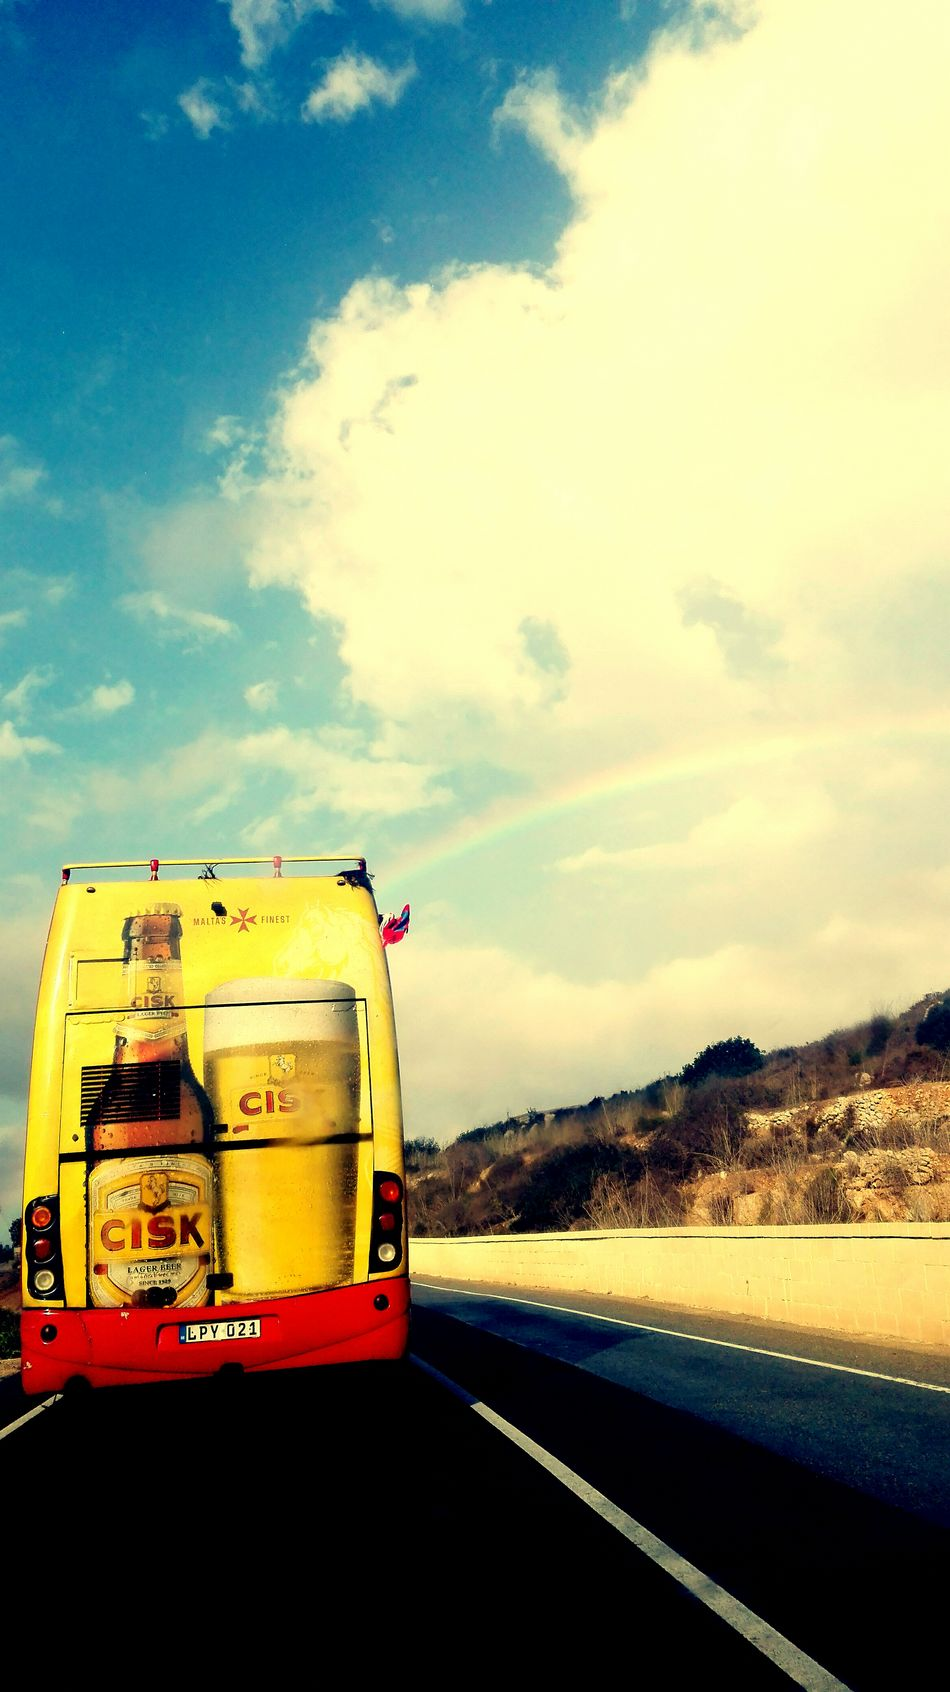 Drink or Drive... Save your life 😎 Helloworld Hello World SocialmediaEyeemphoto Alcohol Bear Drive Driving Drive By Shooting Rainbow Blue Sky Road Road Sign Life Lifecolor Lifechoice Secondchance Secondchoice EyeEm Best Shots EyeEm Gallery Malta♥ Advertisement